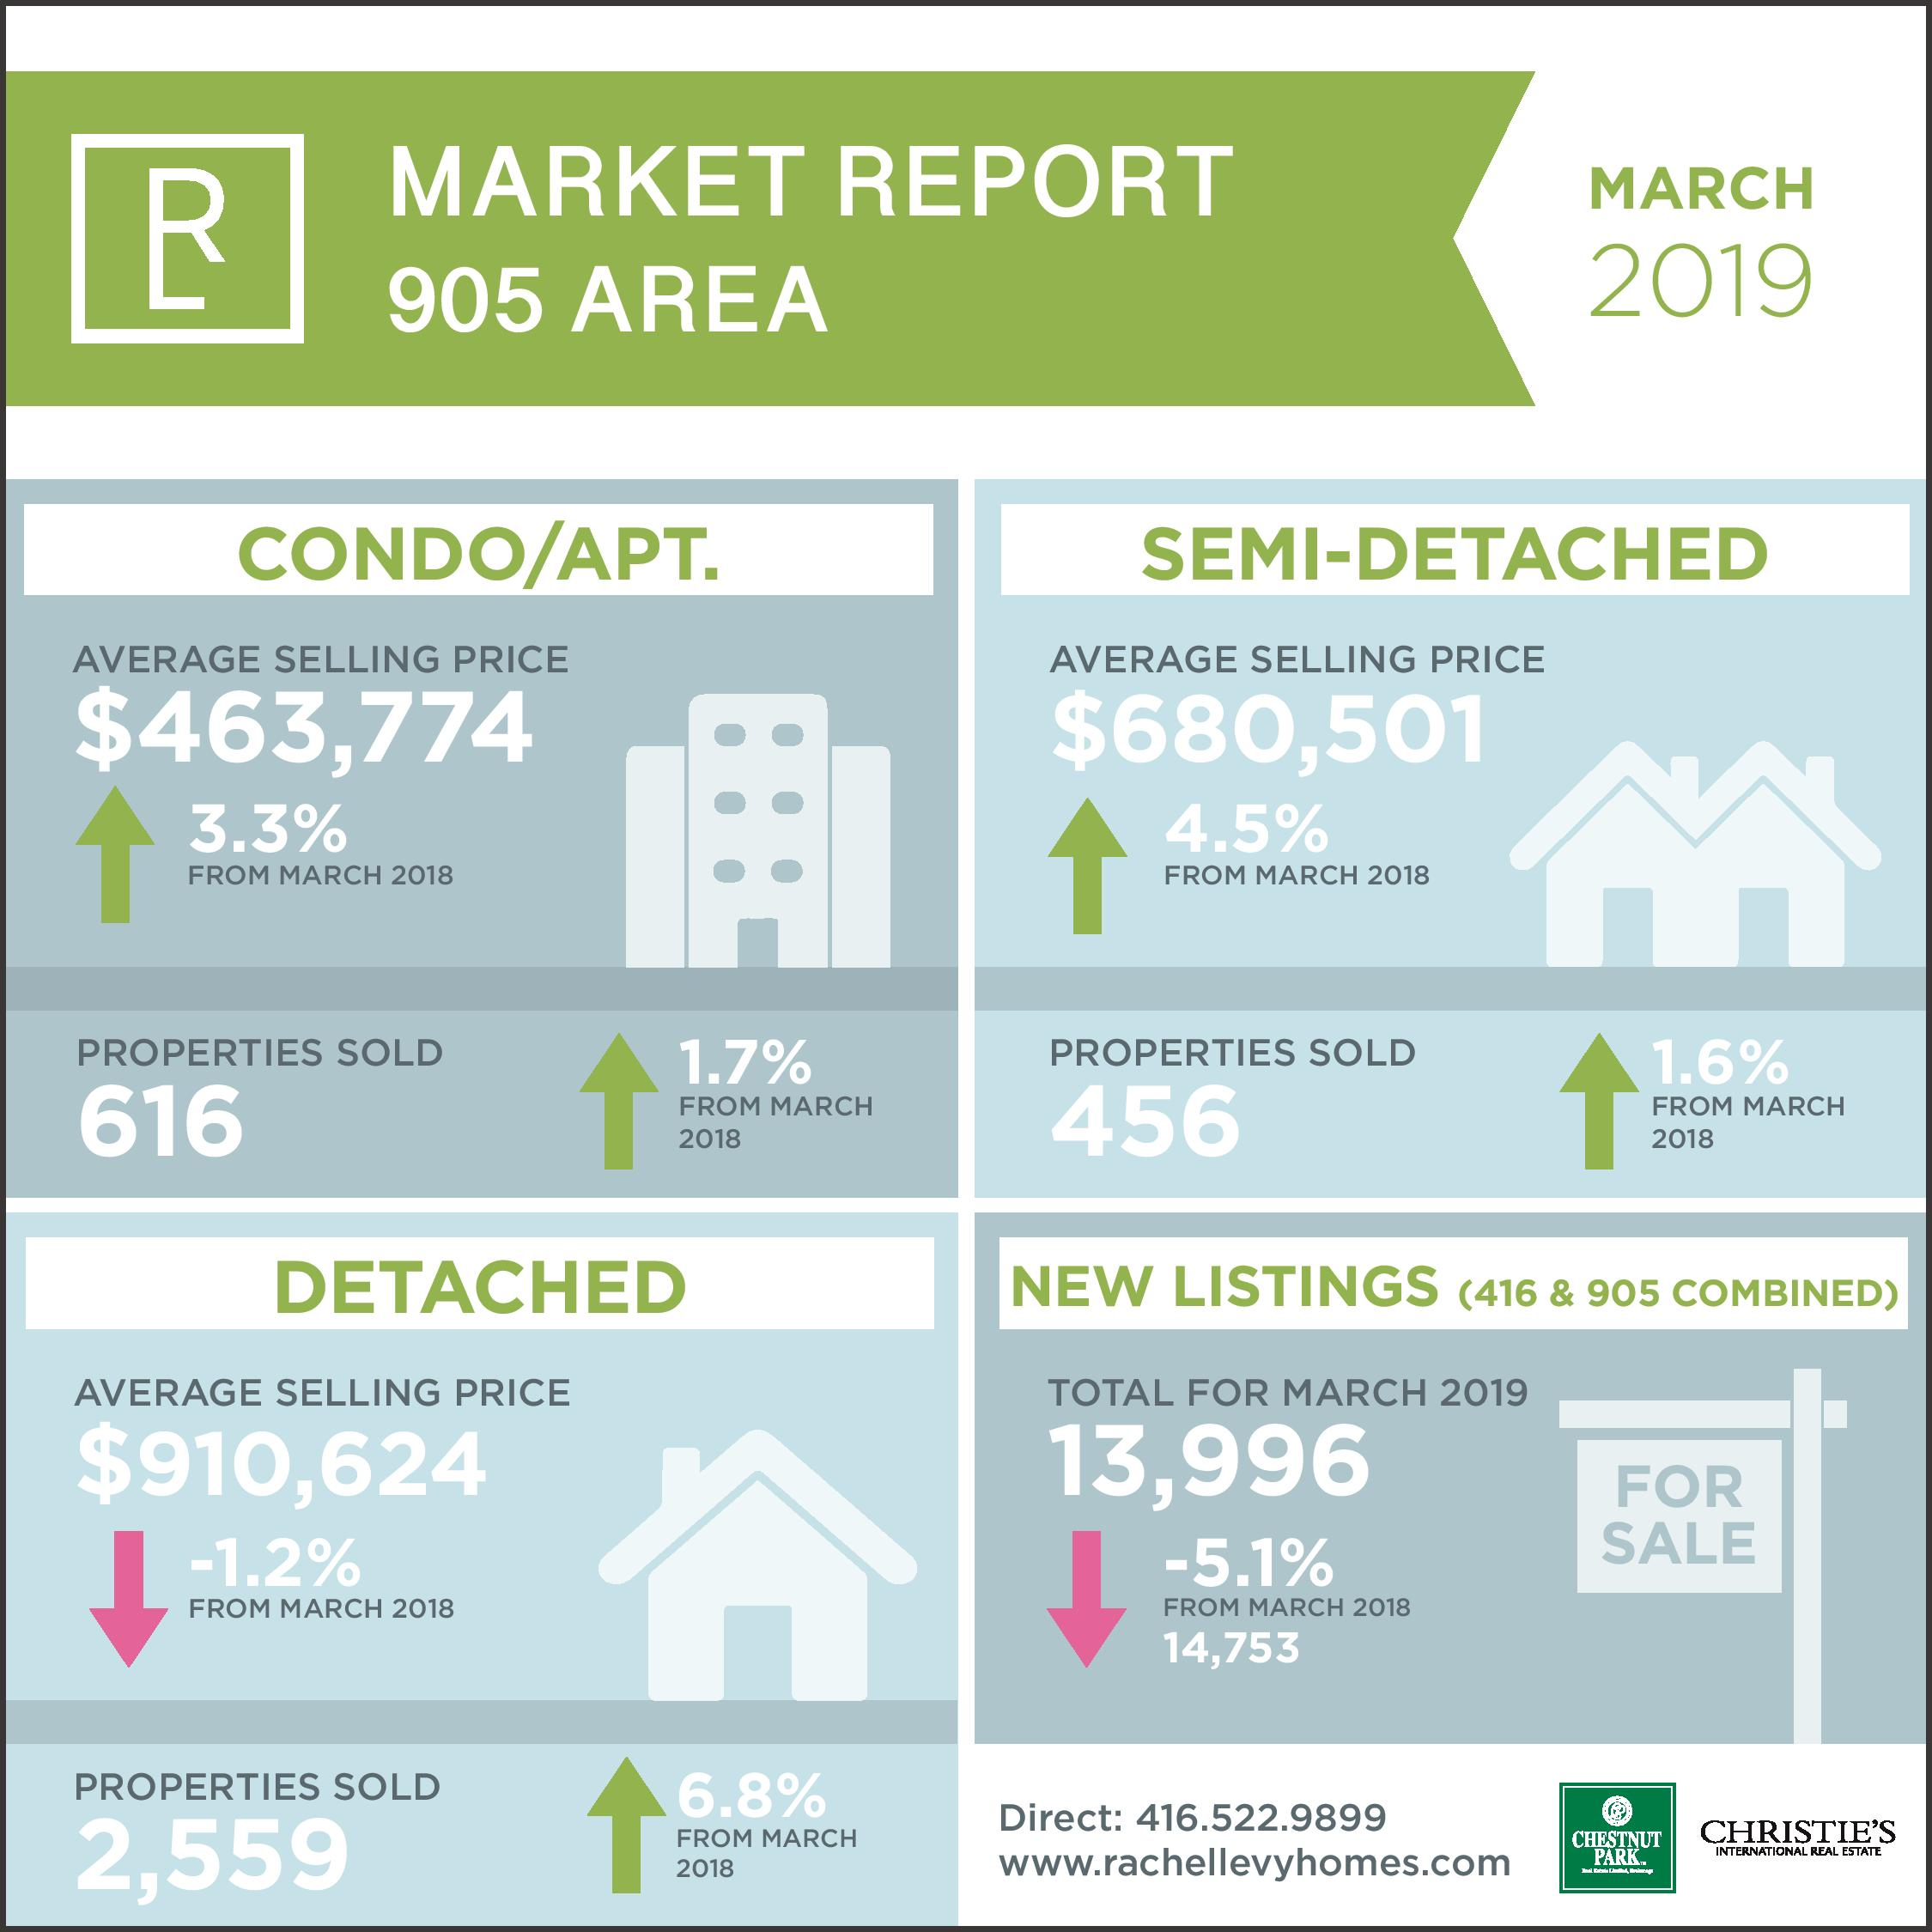 RLevy-Infographic March 2019 -905 area_01-page-001.jpg